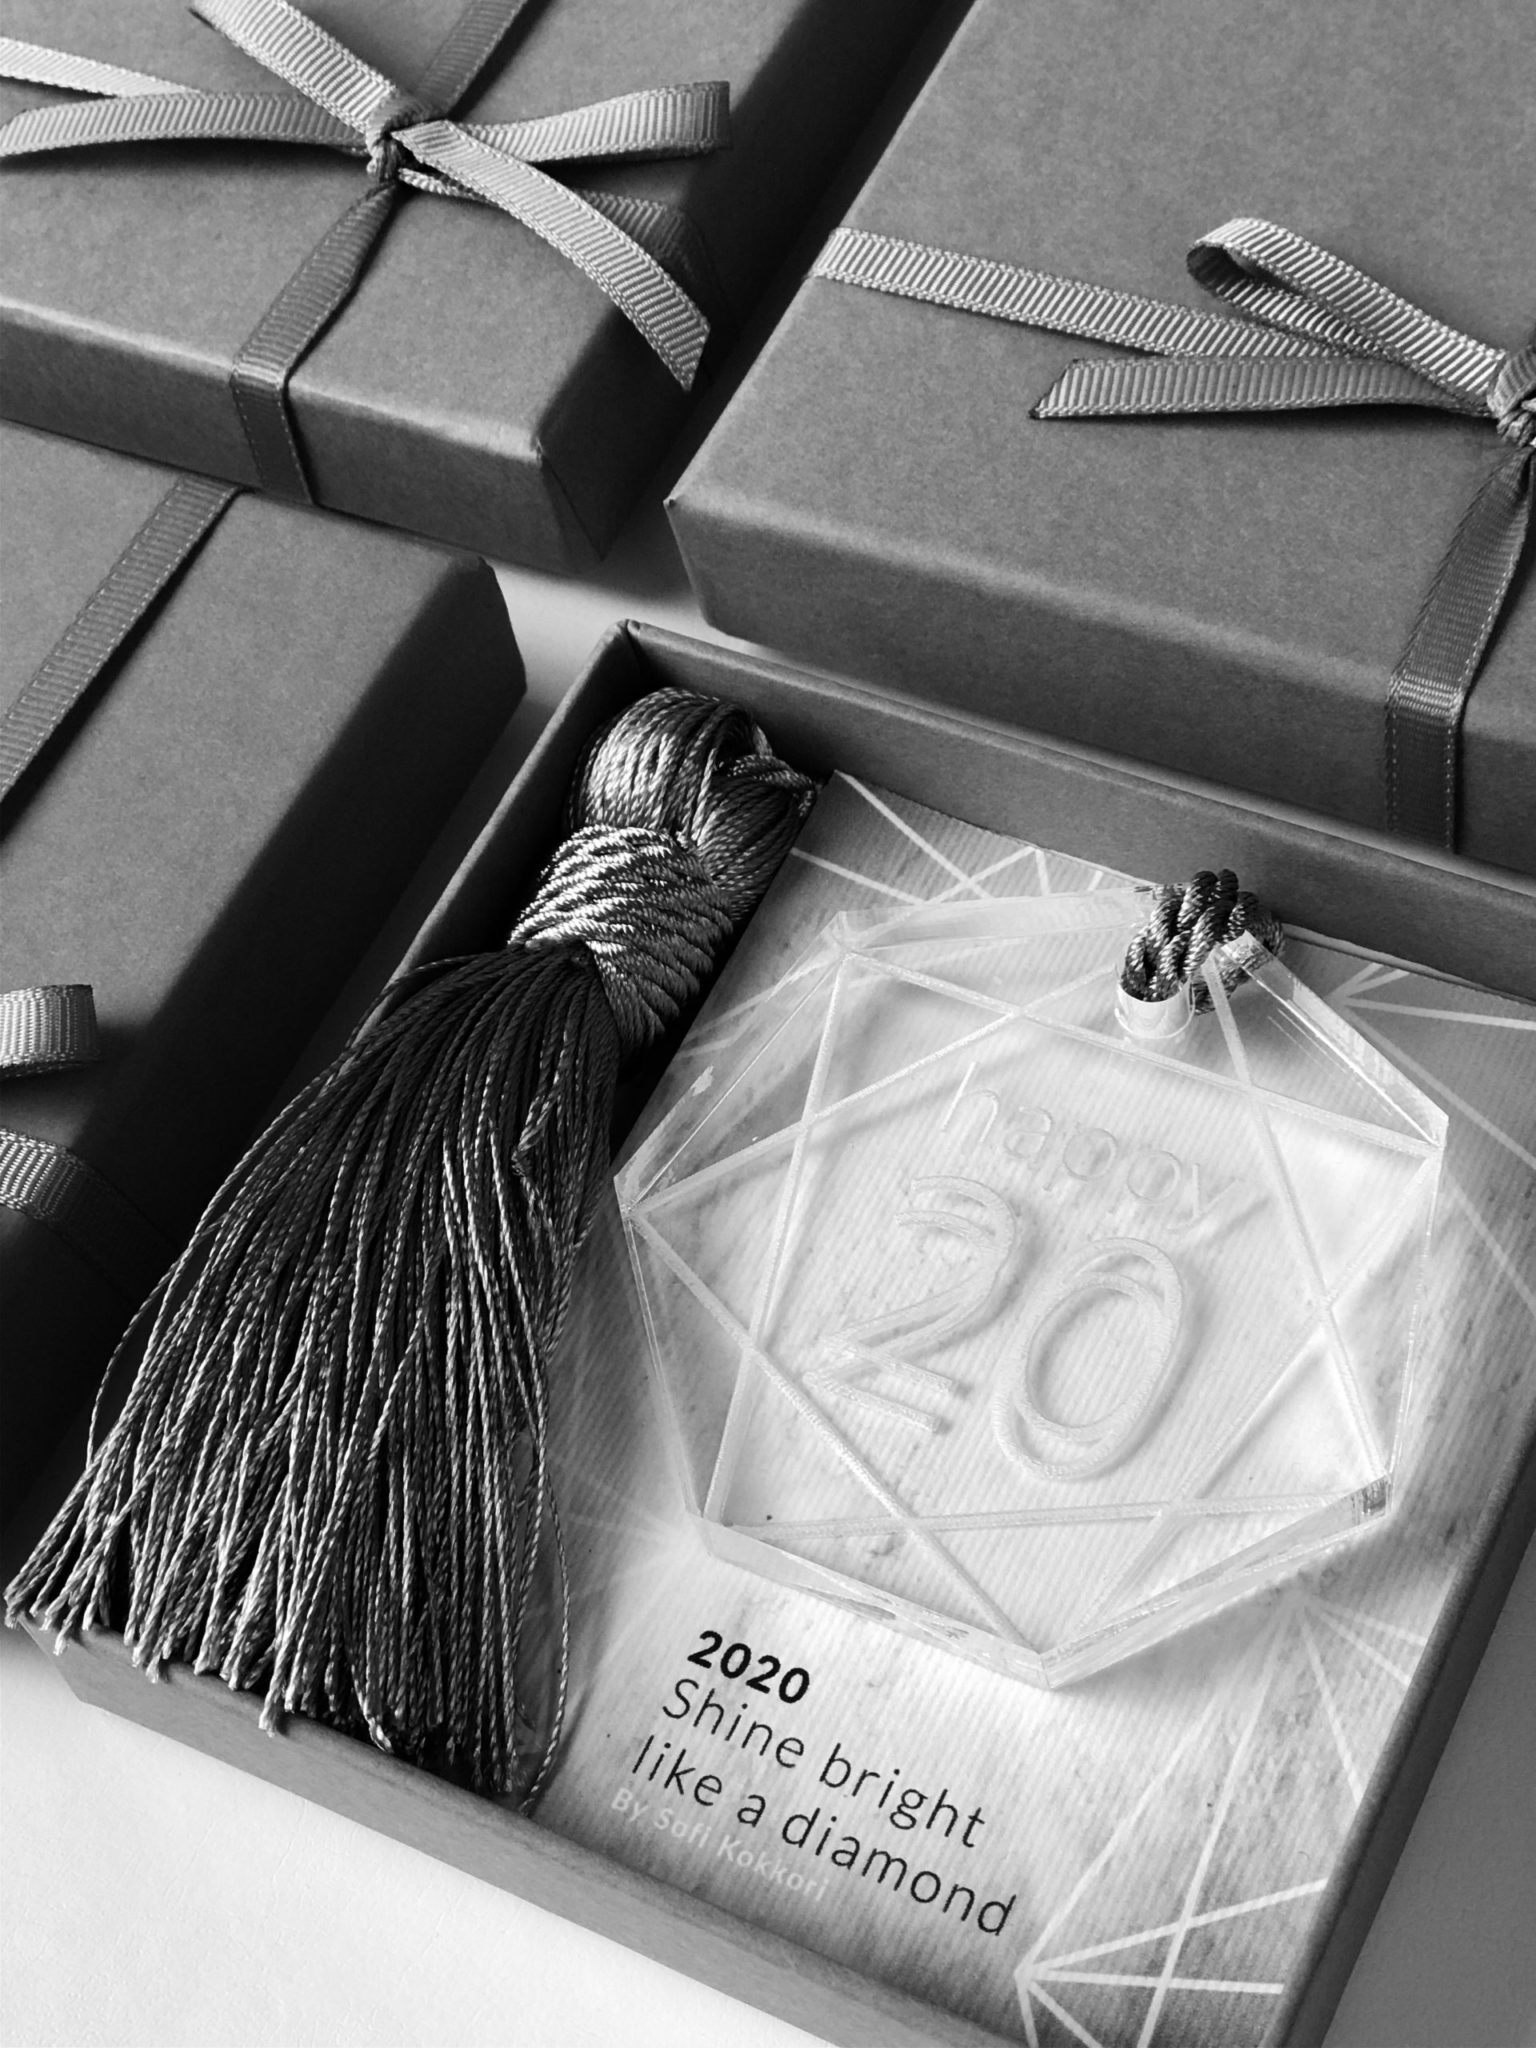 2020 Shine Bright Like A Diamond-special occasion-lucky charm-packaging